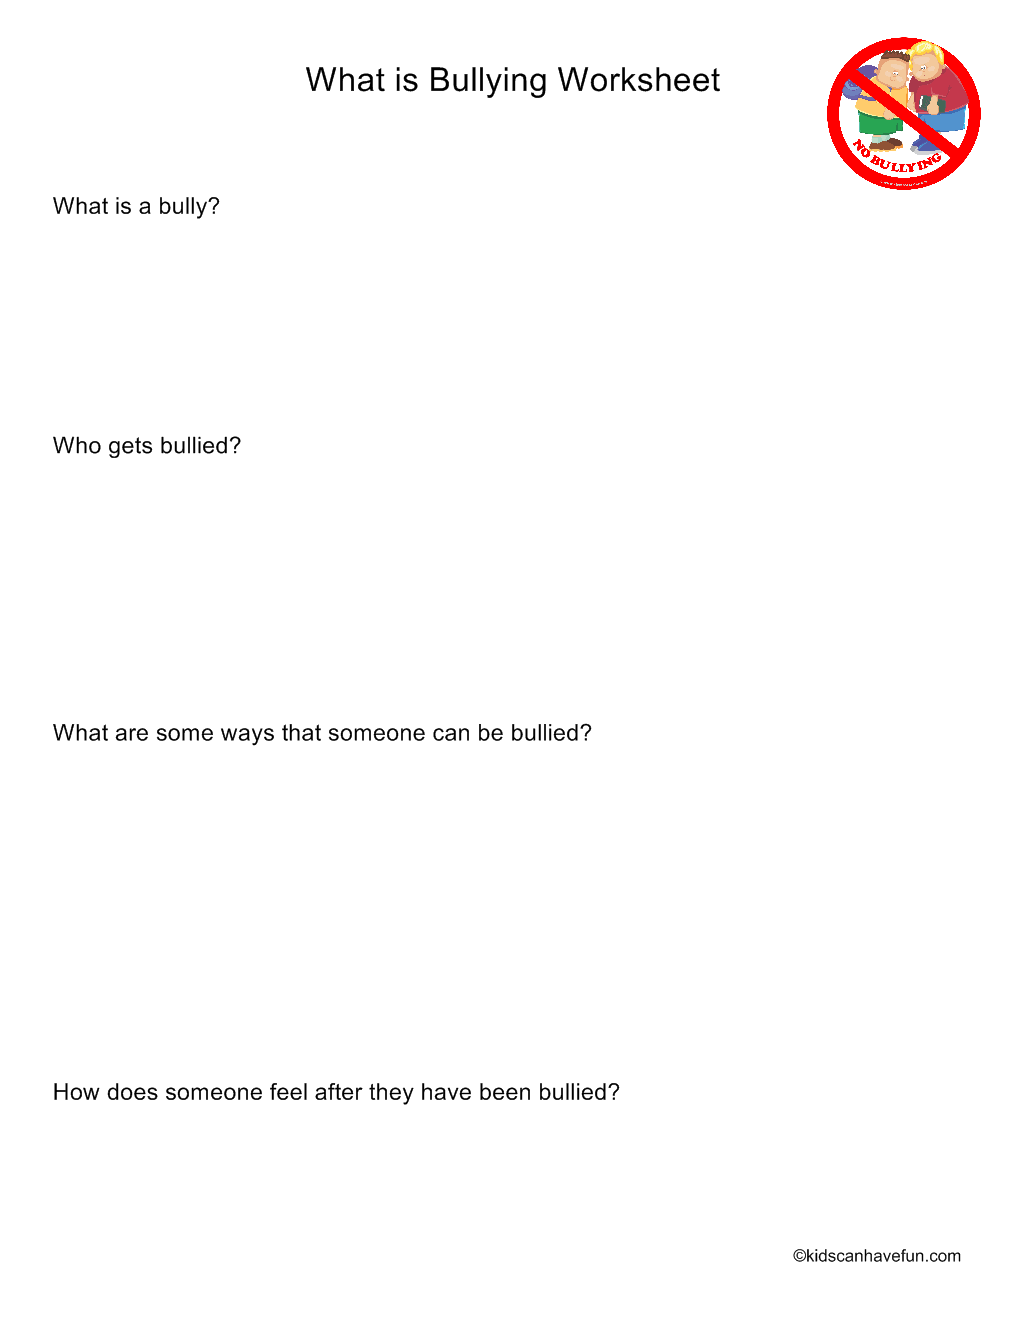 What Is Bullying Worksheet